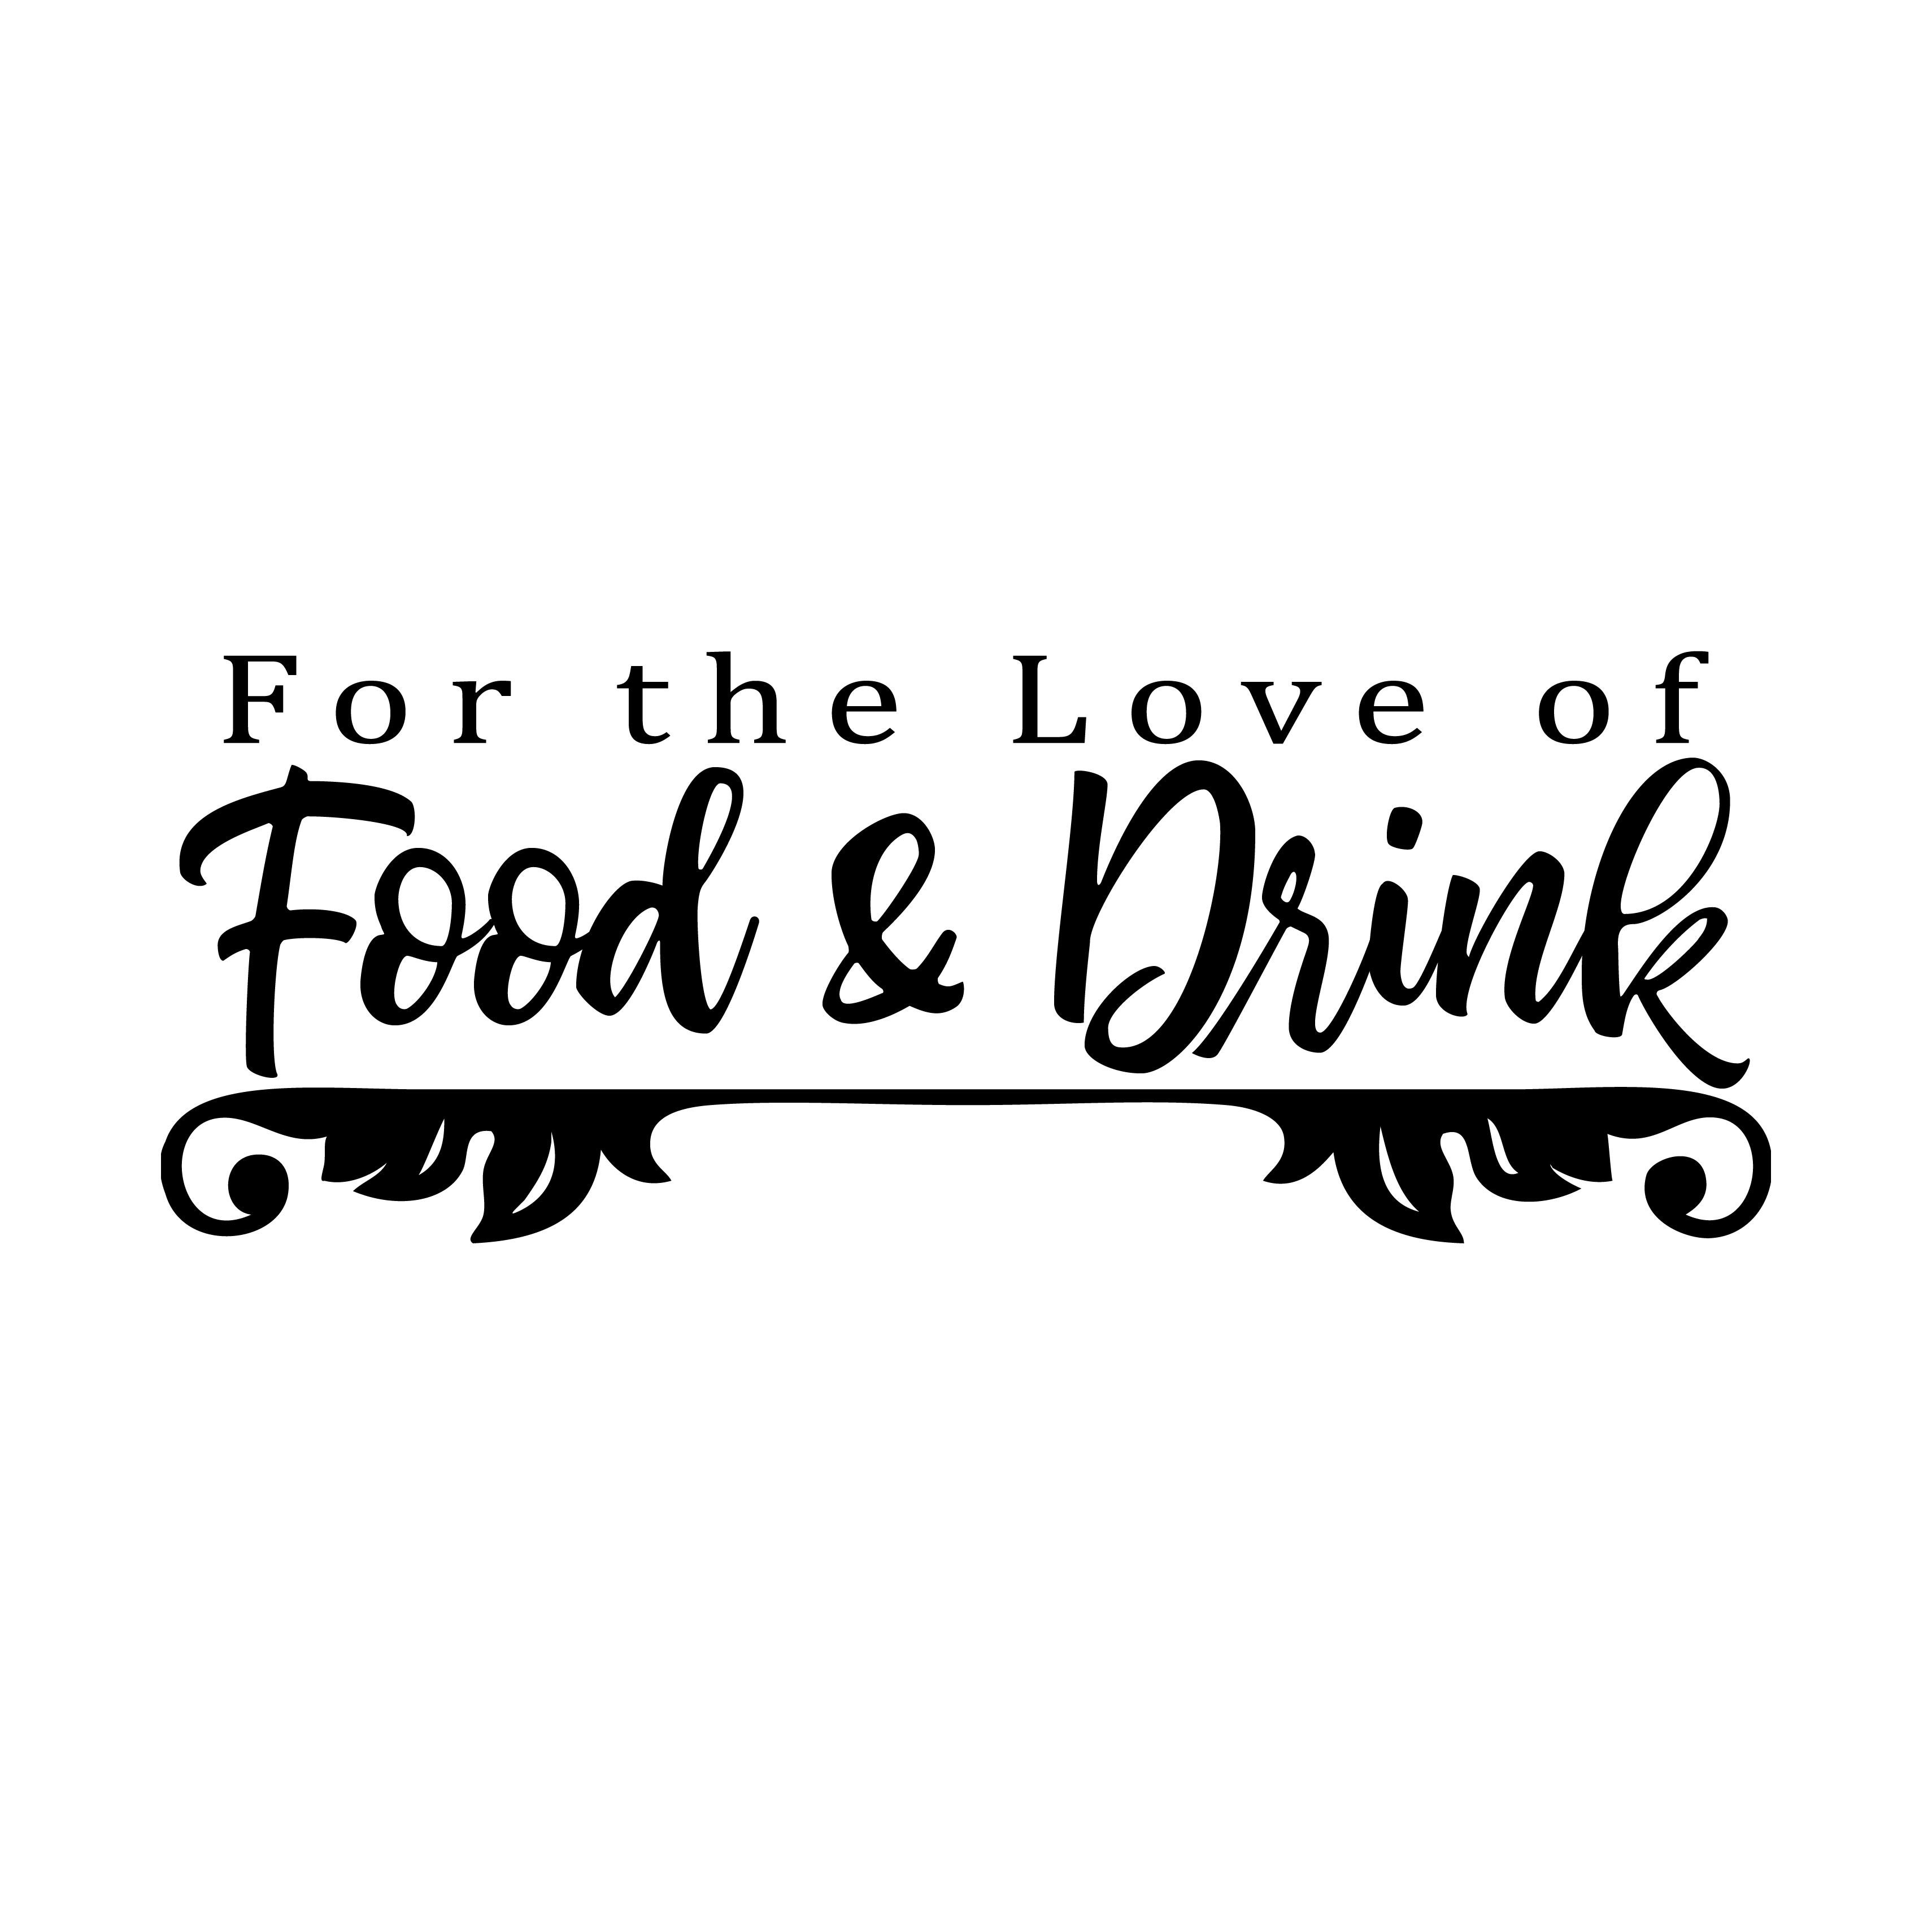 FOR THE LOVE OF FOOD & DRINK